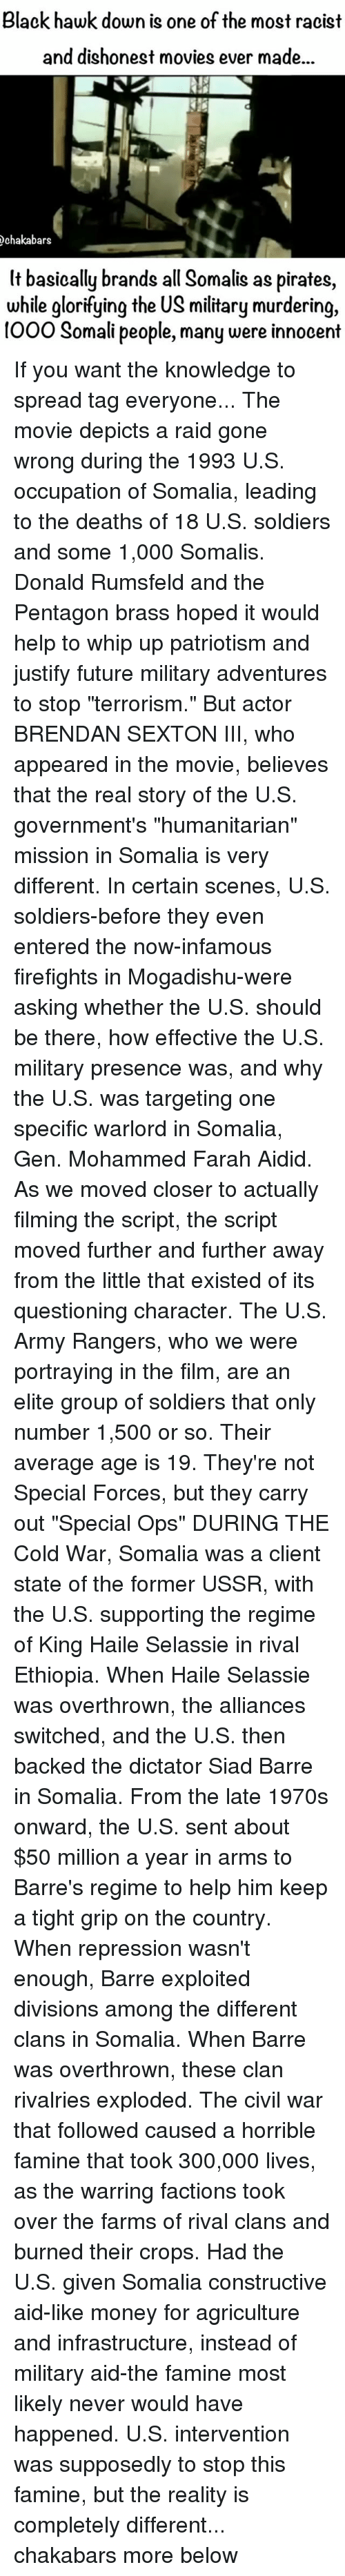 """Future, Memes, and Money: Black hawk down is one of the most racist  and dishonest movies ever made...  Ochakabars  lt basically brands all Somalis as pirates,  while glorifying the US military murdering,  Ooo Somali people, many were innocent If you want the knowledge to spread tag everyone... The movie depicts a raid gone wrong during the 1993 U.S. occupation of Somalia, leading to the deaths of 18 U.S. soldiers and some 1,000 Somalis. Donald Rumsfeld and the Pentagon brass hoped it would help to whip up patriotism and justify future military adventures to stop """"terrorism."""" But actor BRENDAN SEXTON III, who appeared in the movie, believes that the real story of the U.S. government's """"humanitarian"""" mission in Somalia is very different. In certain scenes, U.S. soldiers-before they even entered the now-infamous firefights in Mogadishu-were asking whether the U.S. should be there, how effective the U.S. military presence was, and why the U.S. was targeting one specific warlord in Somalia, Gen. Mohammed Farah Aidid. As we moved closer to actually filming the script, the script moved further and further away from the little that existed of its questioning character. The U.S. Army Rangers, who we were portraying in the film, are an elite group of soldiers that only number 1,500 or so. Their average age is 19. They're not Special Forces, but they carry out """"Special Ops"""" DURING THE Cold War, Somalia was a client state of the former USSR, with the U.S. supporting the regime of King Haile Selassie in rival Ethiopia. When Haile Selassie was overthrown, the alliances switched, and the U.S. then backed the dictator Siad Barre in Somalia. From the late 1970s onward, the U.S. sent about $50 million a year in arms to Barre's regime to help him keep a tight grip on the country. When repression wasn't enough, Barre exploited divisions among the different clans in Somalia. When Barre was overthrown, these clan rivalries exploded. The civil war that followed caused a horrible famine t"""